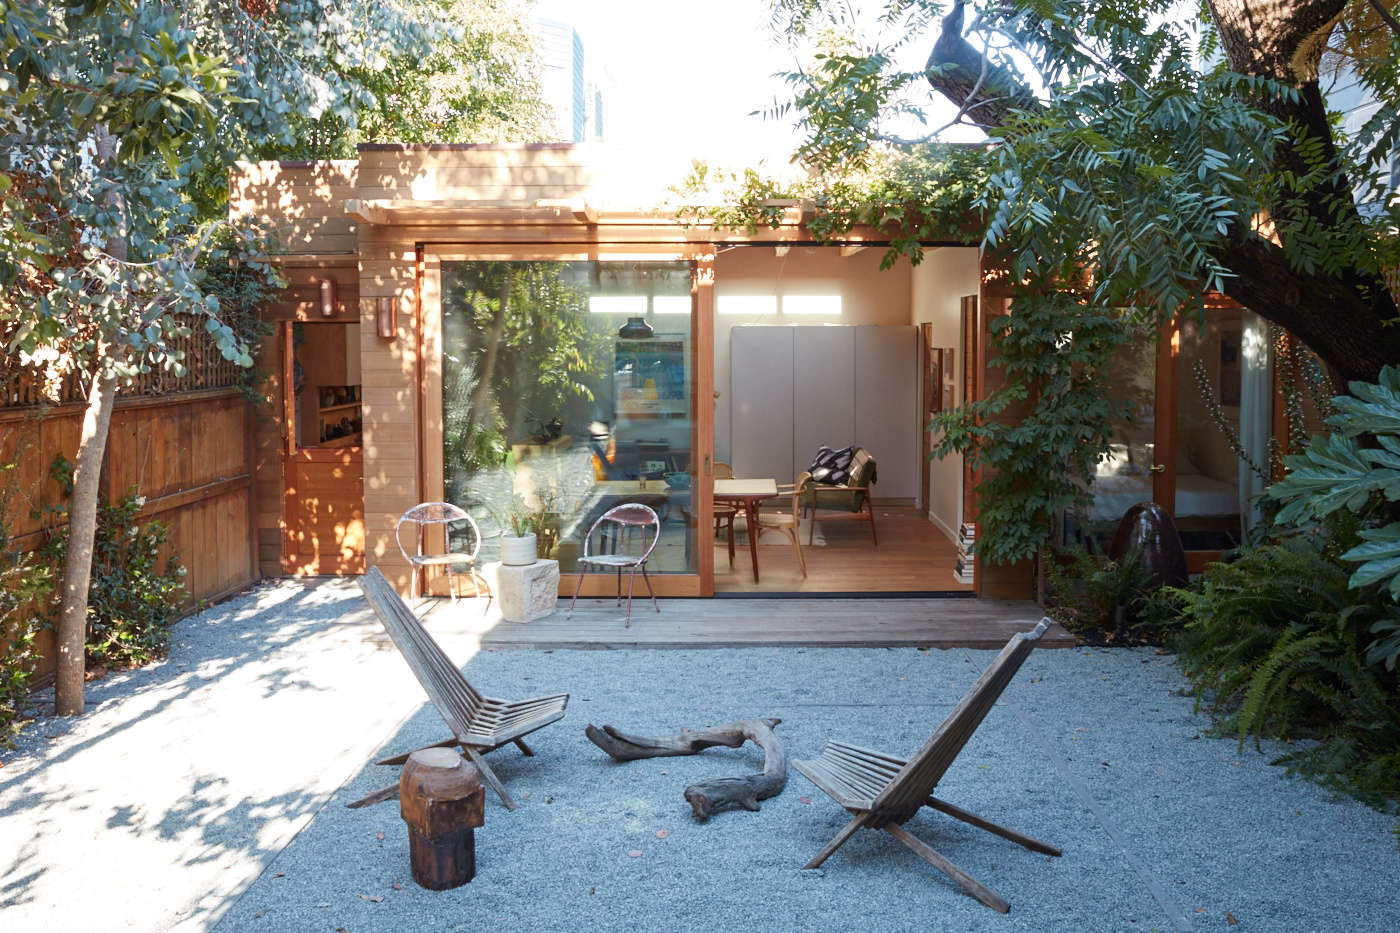 The neglected backyard is now a peaceful outdoor space with decomposed granite underfoot. &#8